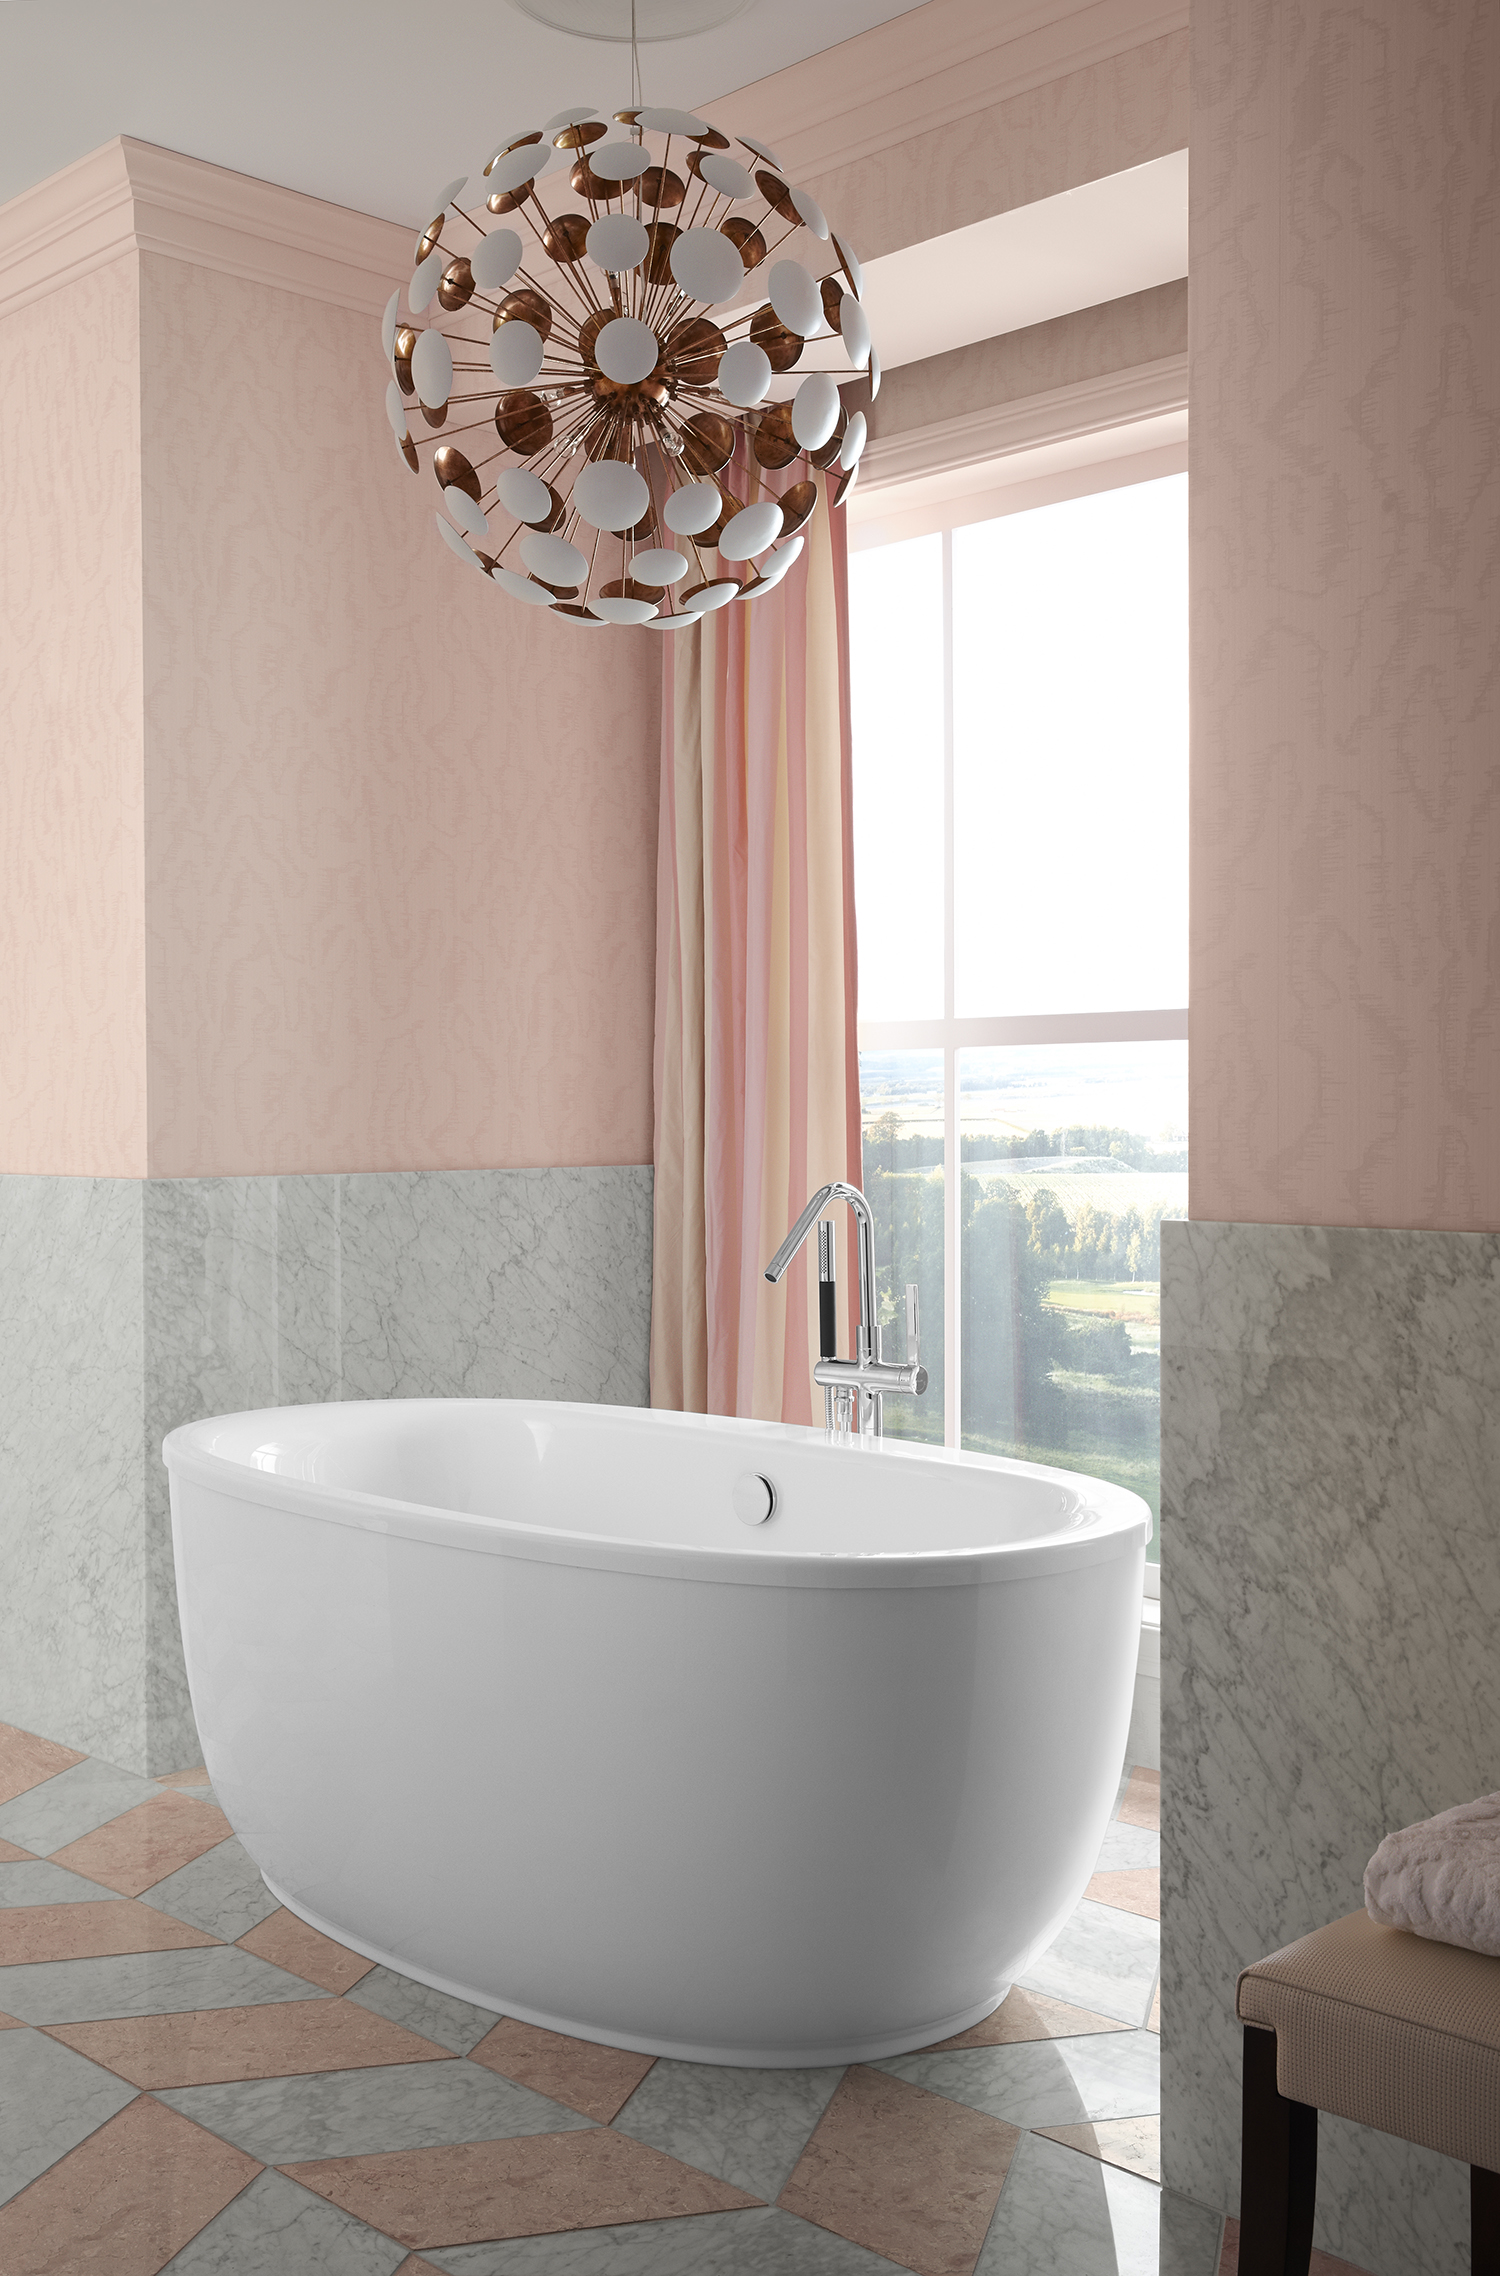 Stillness® bath filler   Sunstruck® bath     ANN SACKS® Carrara field tile     Set into a sunny alcove, a separate bathing nook invites calm respite with an oval, ergonomically designed bath.